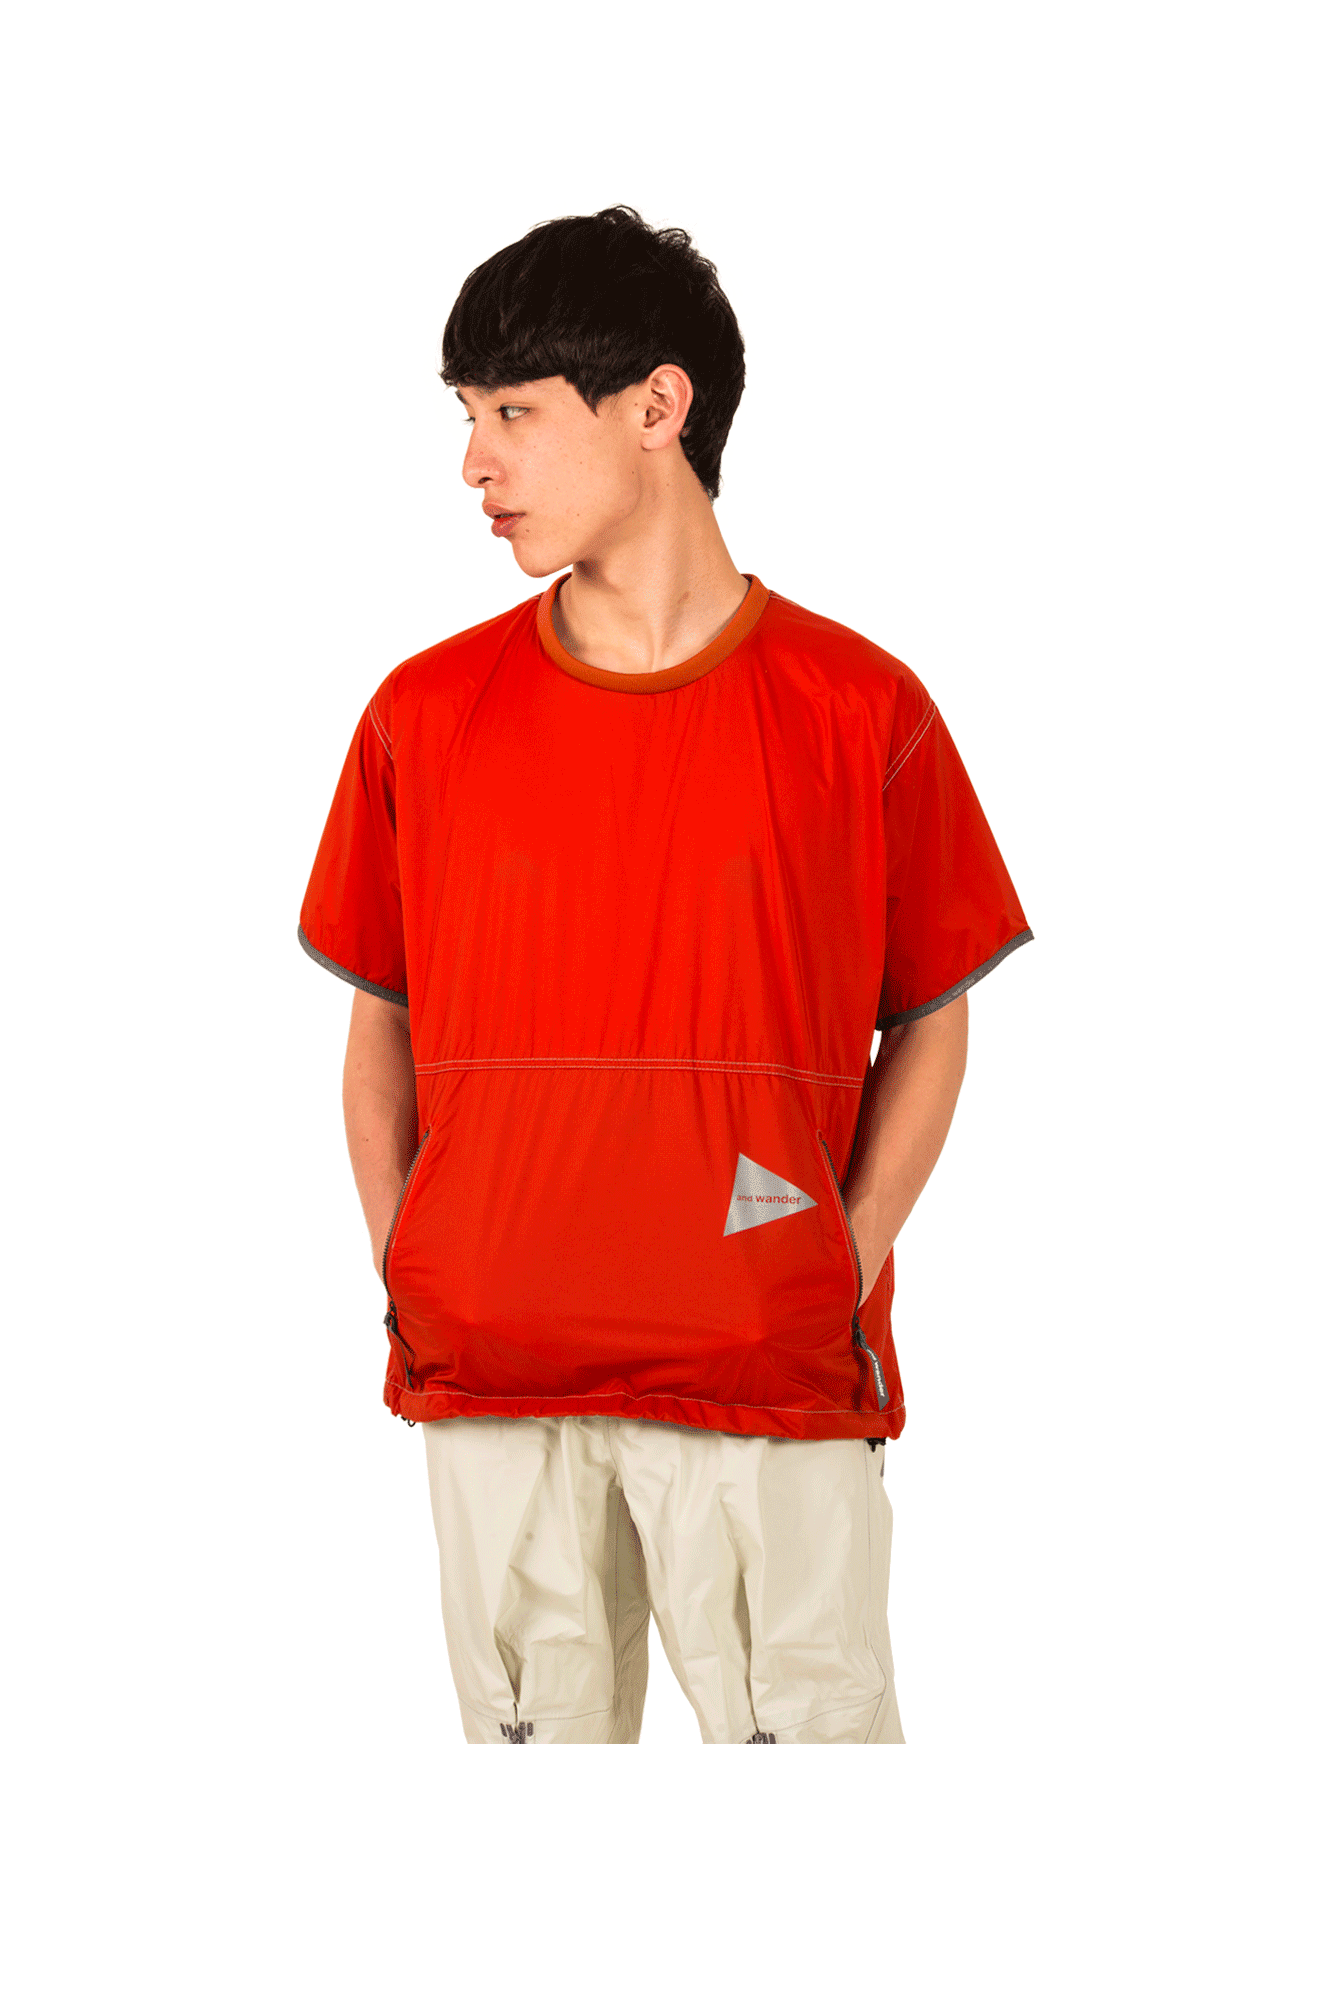 And Wander T-Shirts Pertex Wind Tee Arancione AW91-FT626#000#ORA#0 - One Block Down